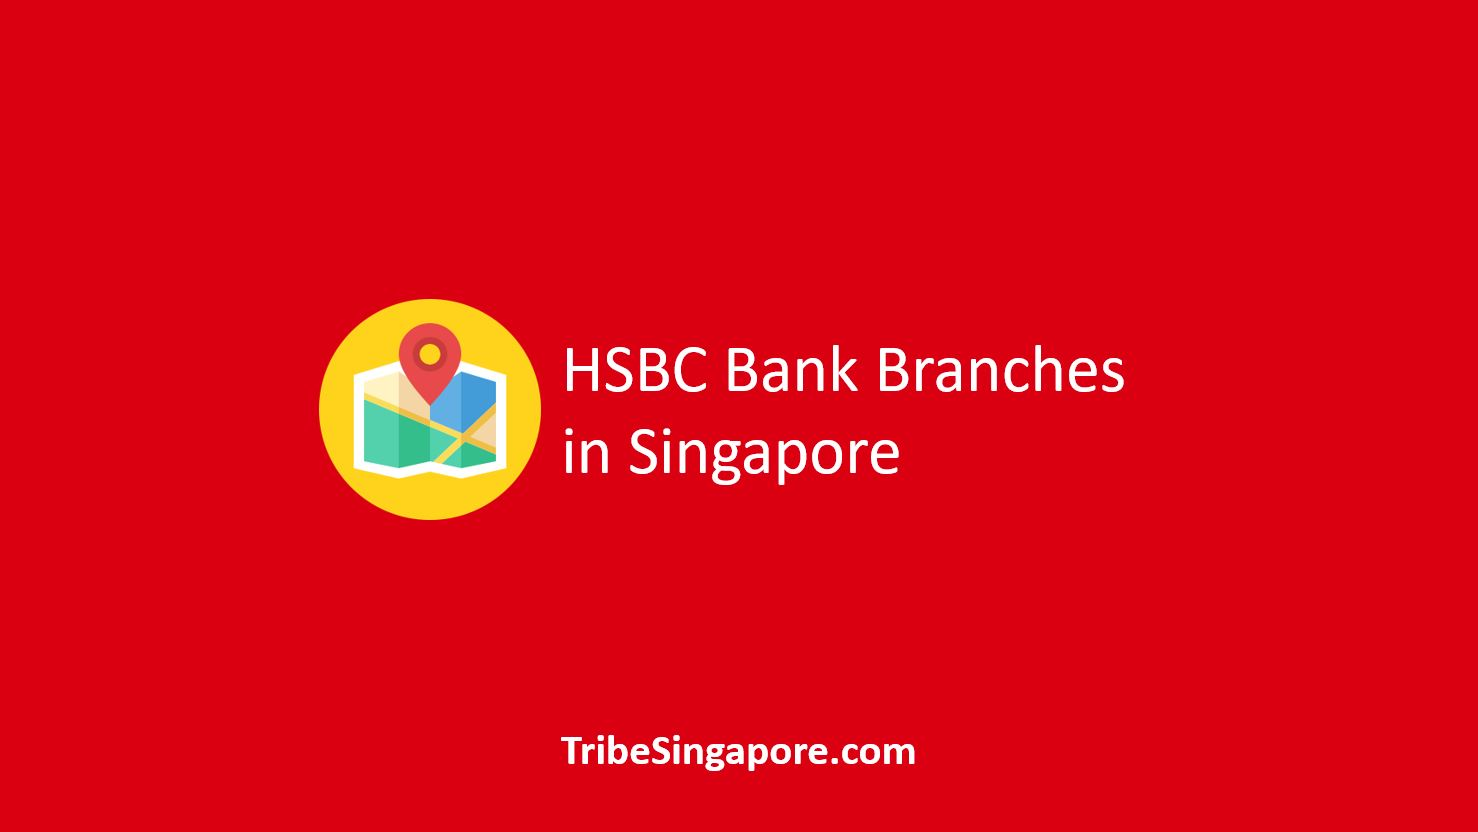 HSBC Bank Branches in Singapore